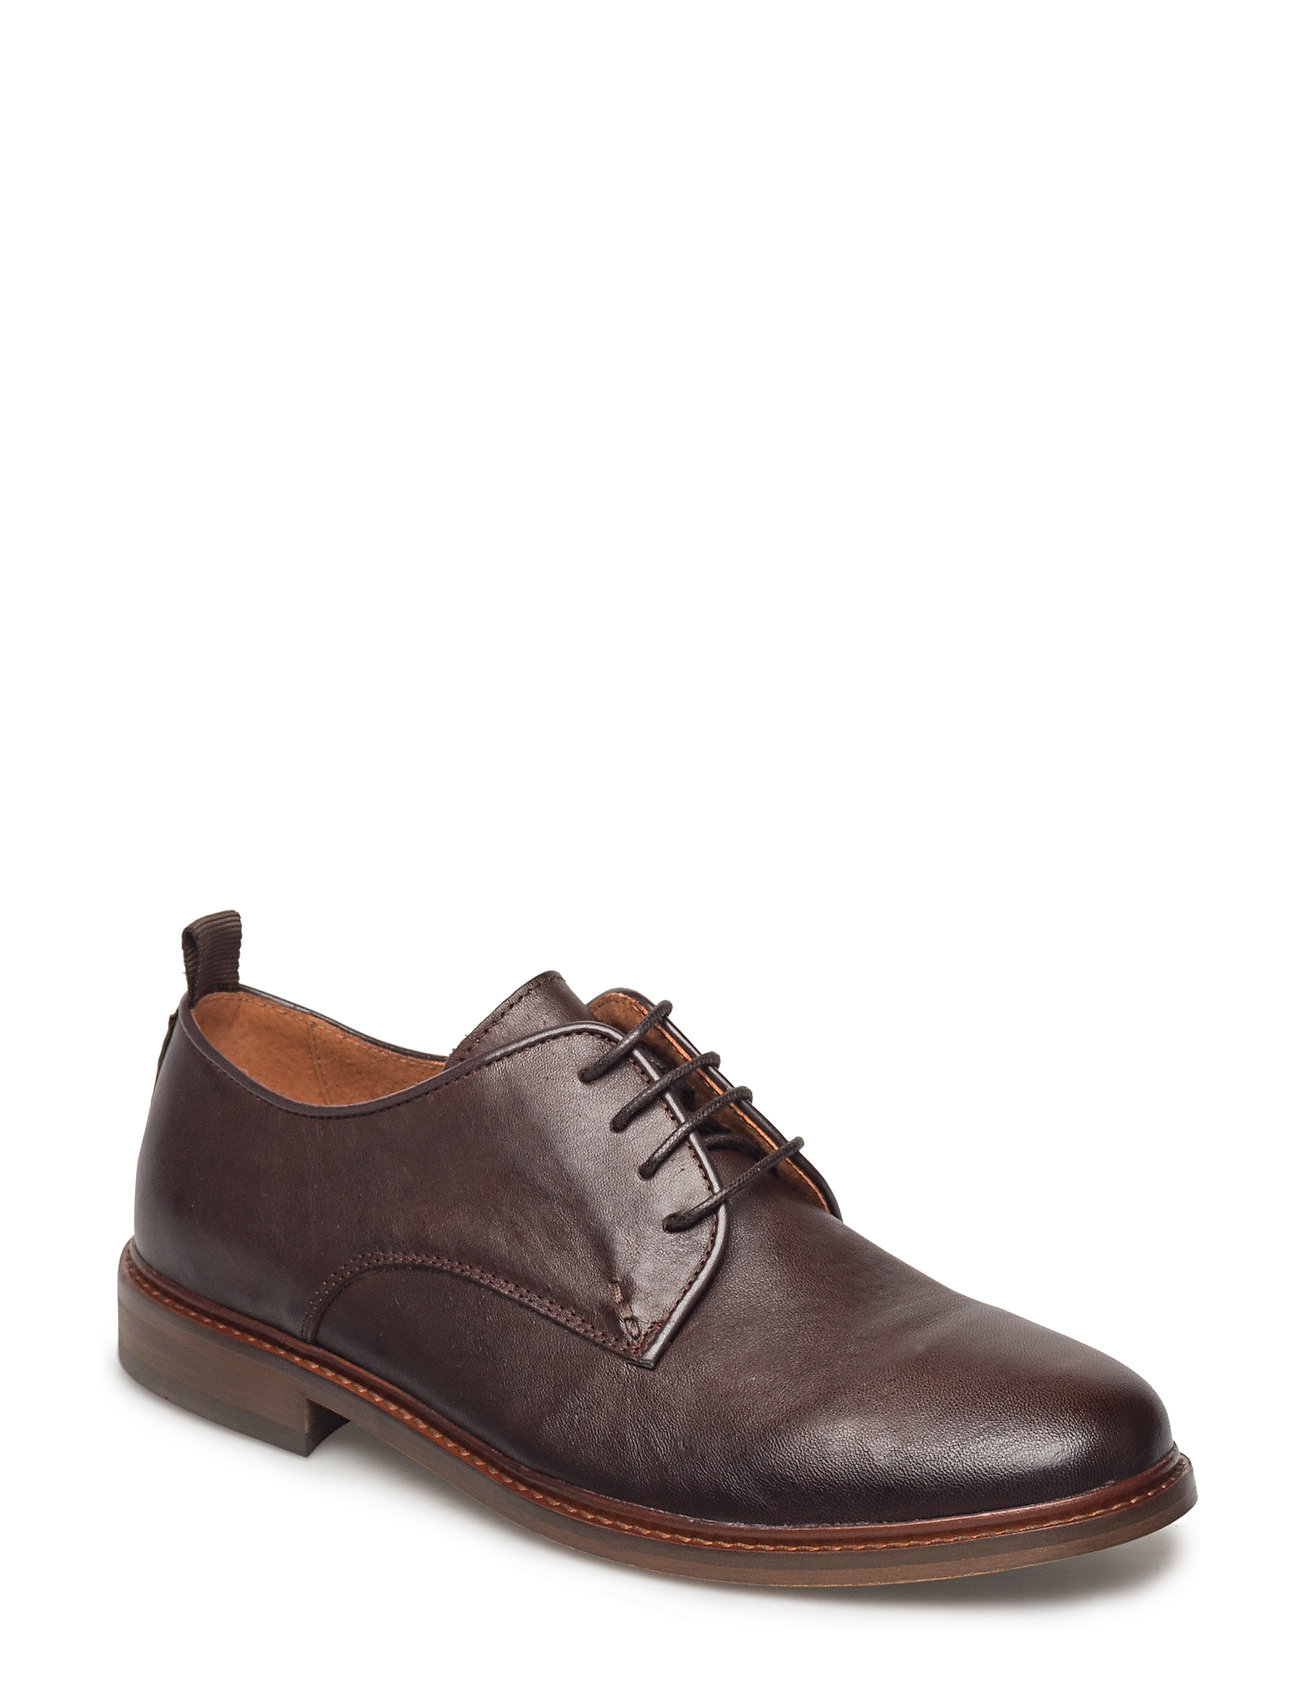 Image of Stb-Nate L Shoes Business Laced Shoes Brun Shoe The Bear (3406154375)